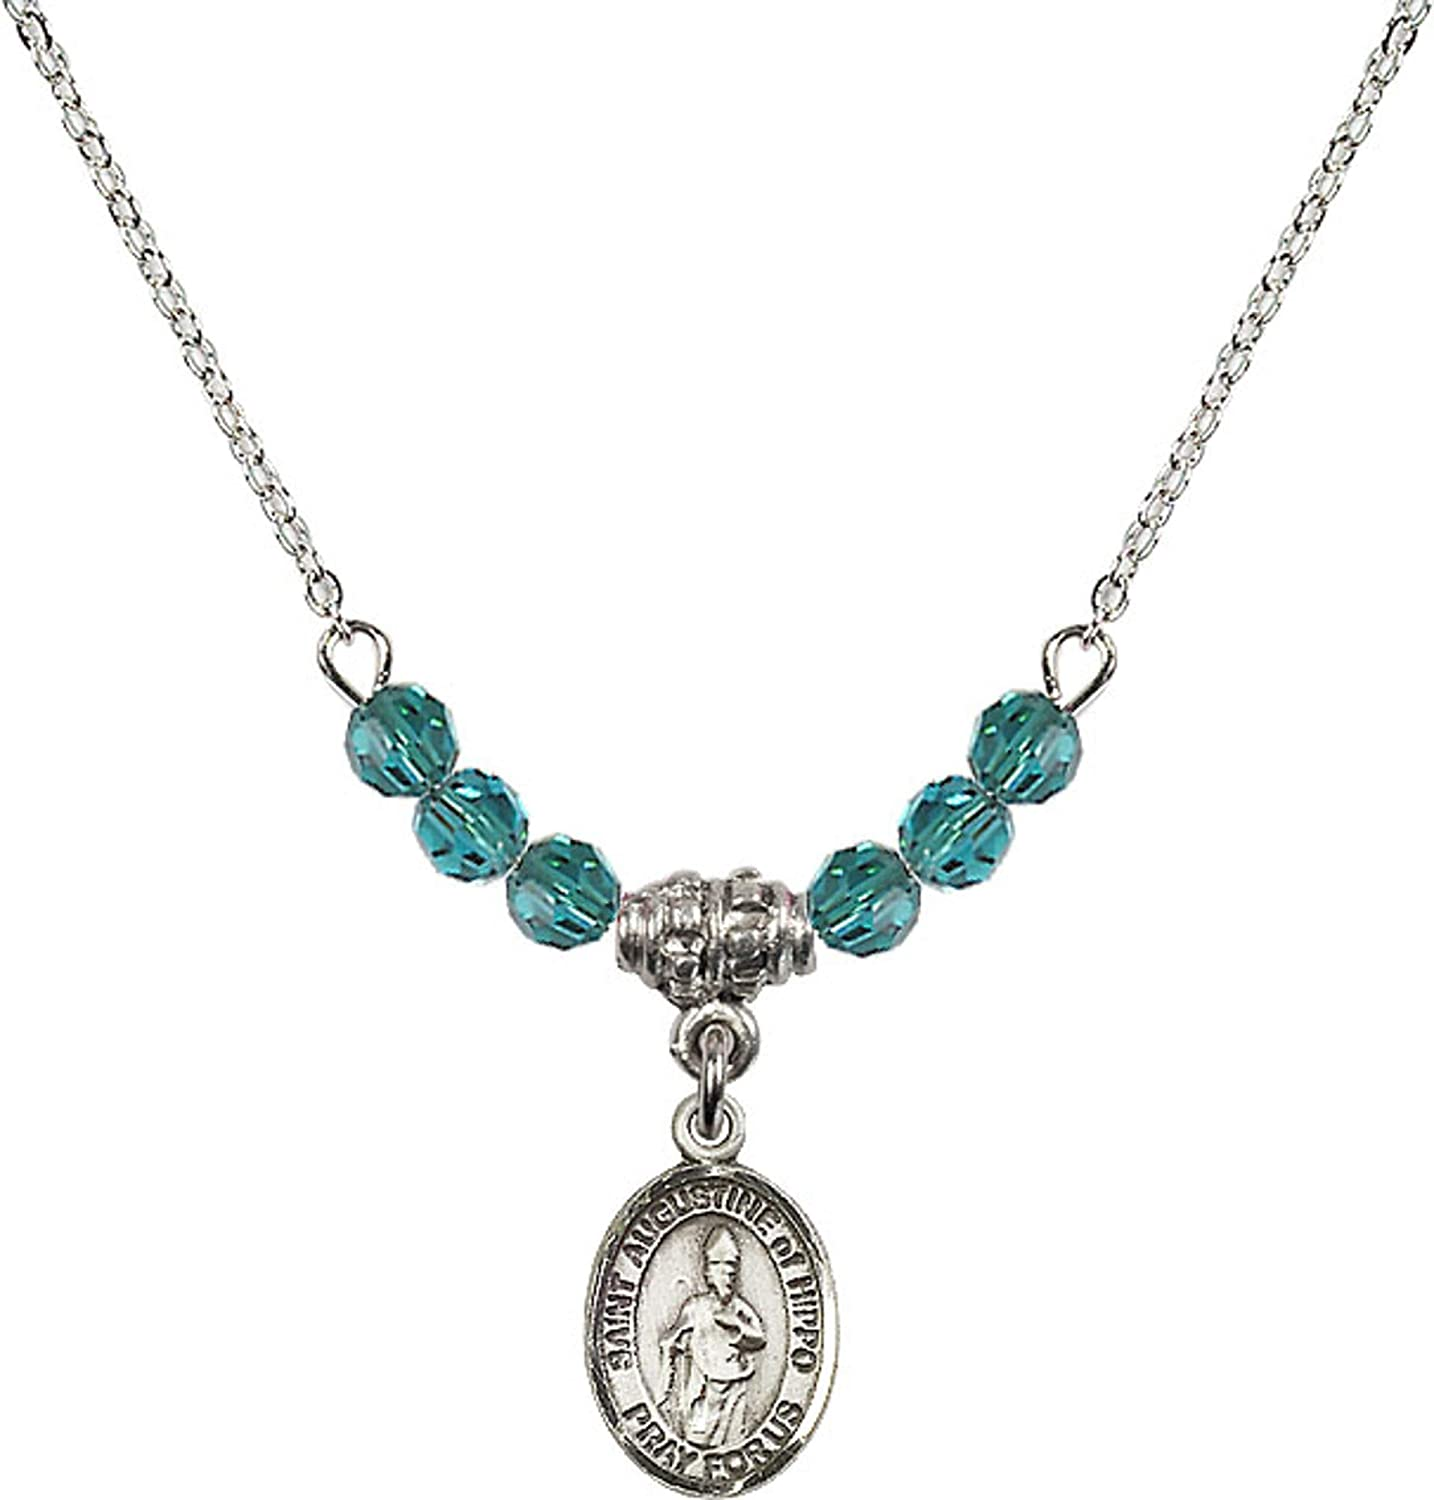 Bonyak Jewelry 18 Inch Rhodium Plated Necklace w// 4mm Blue December Birth Month Stone Beads and Saint Augustine of Hippo Charm